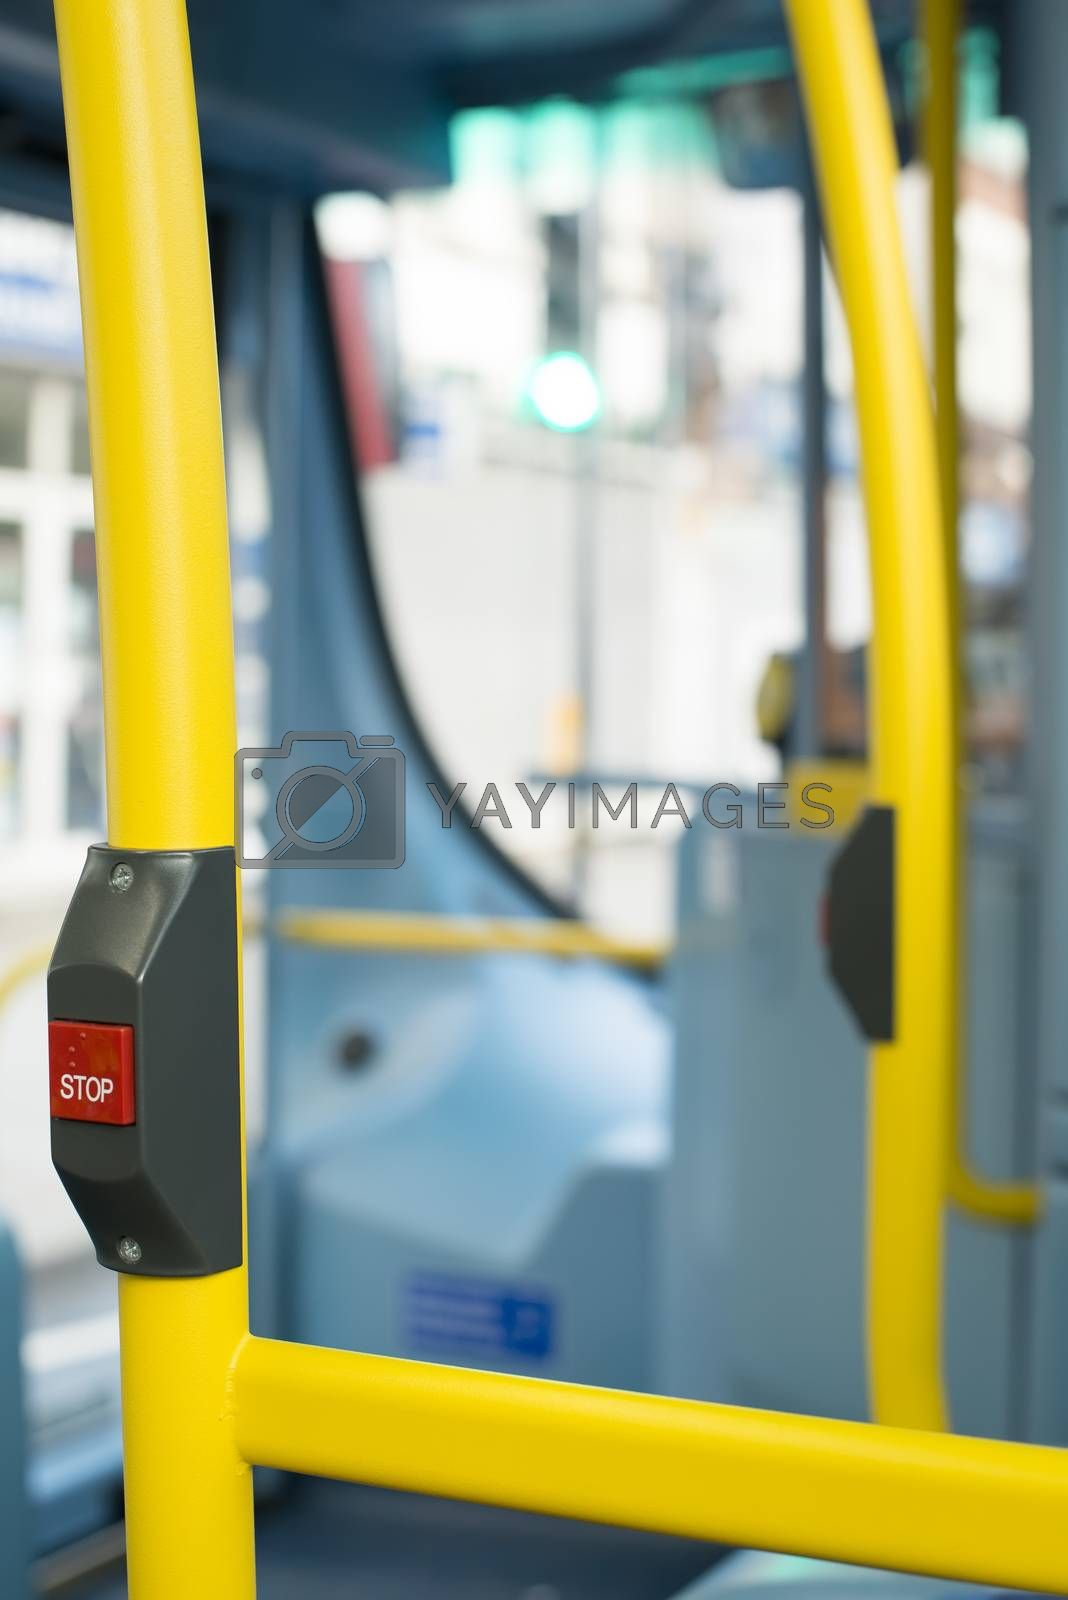 Royalty free image of Bus Interior at public transport by deyan_georgiev